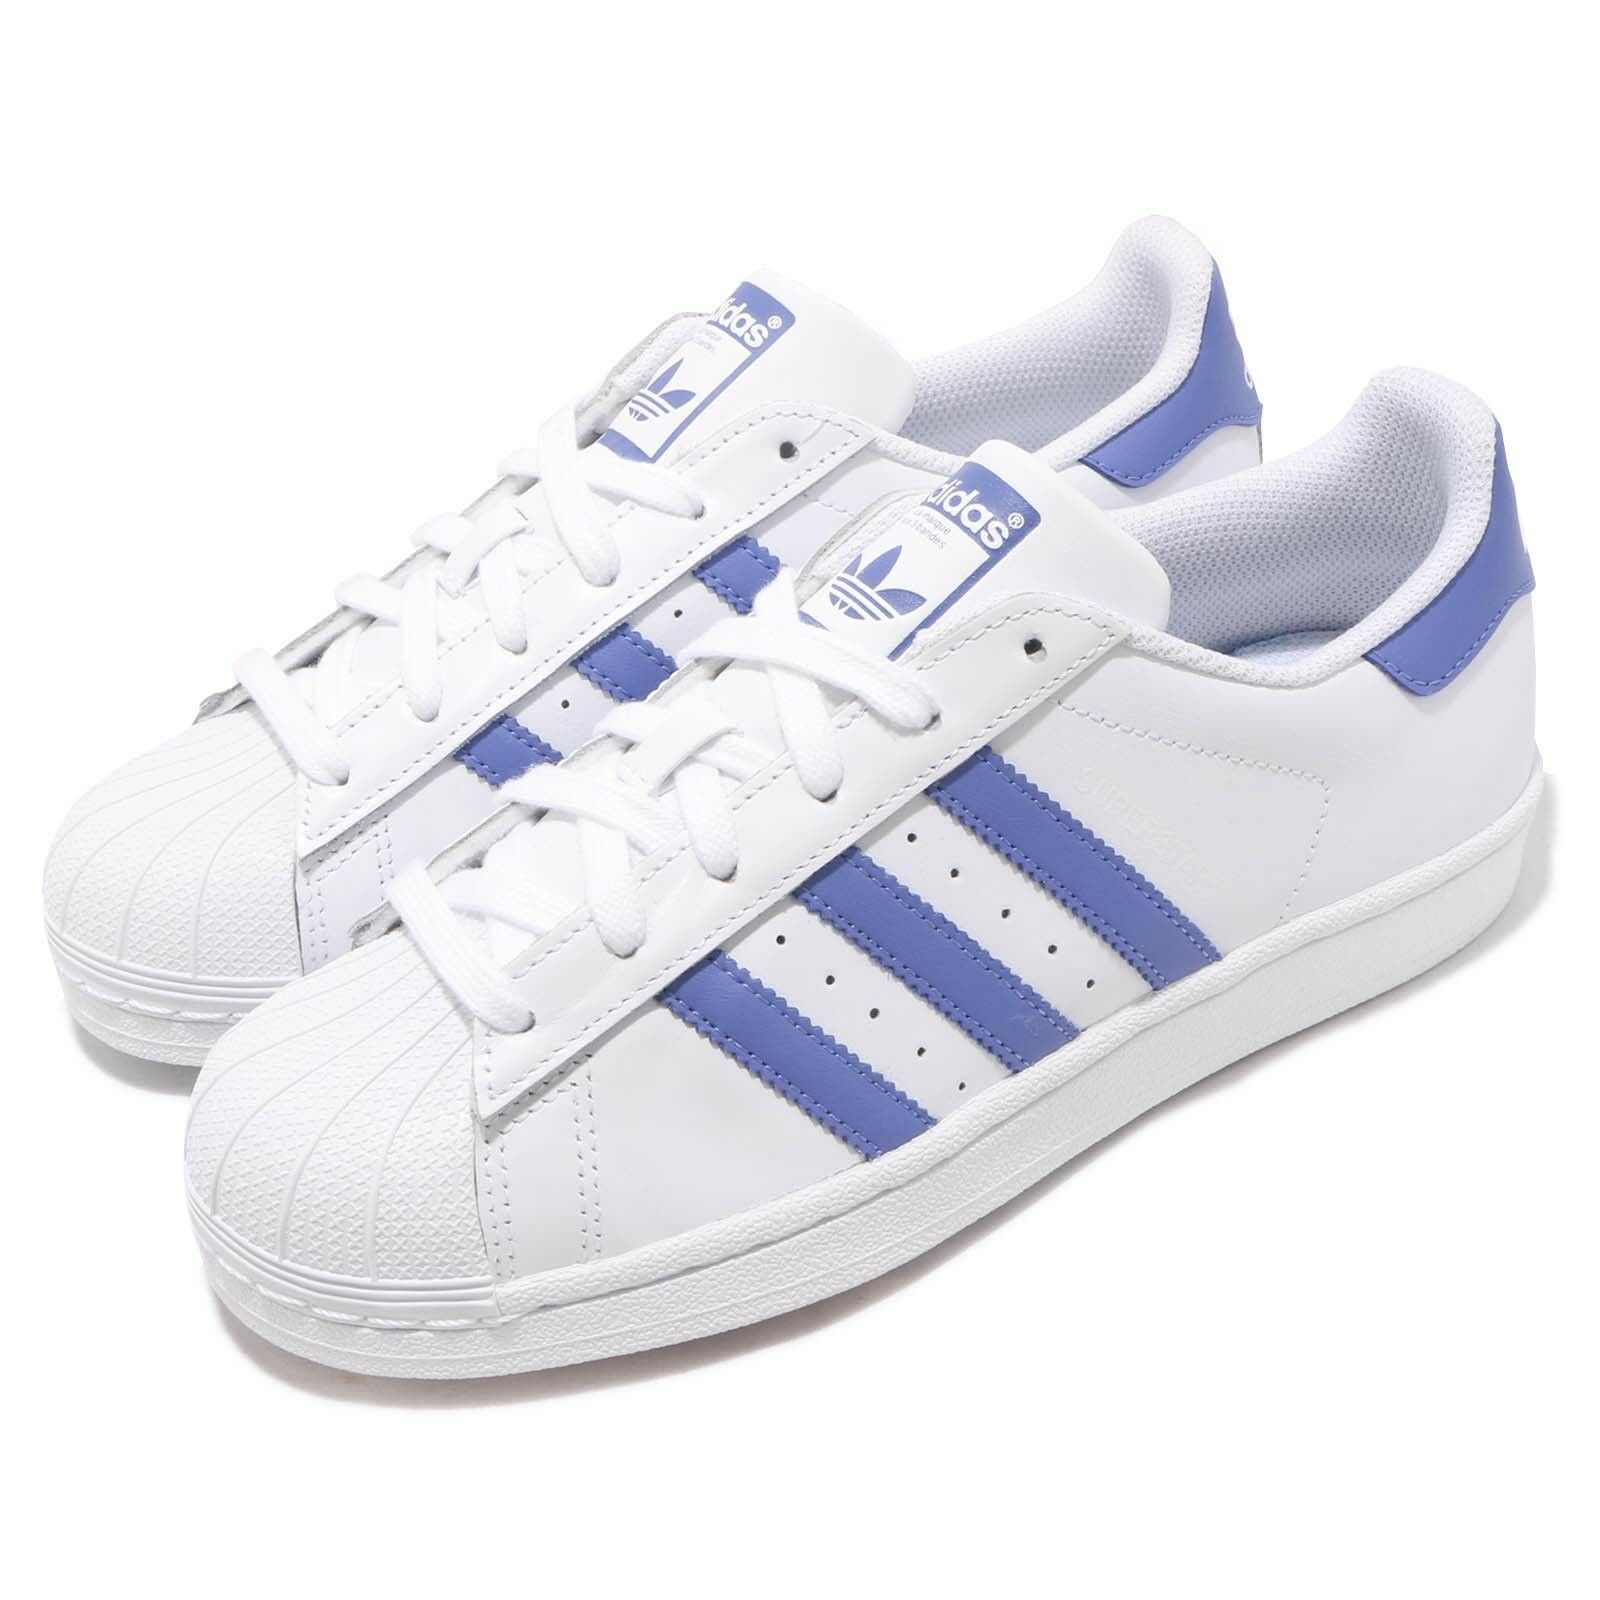 Adidas Originals Superstar Superstar Superstar White Purple Mens Womens Casual shoes Sneakers G27810 607061